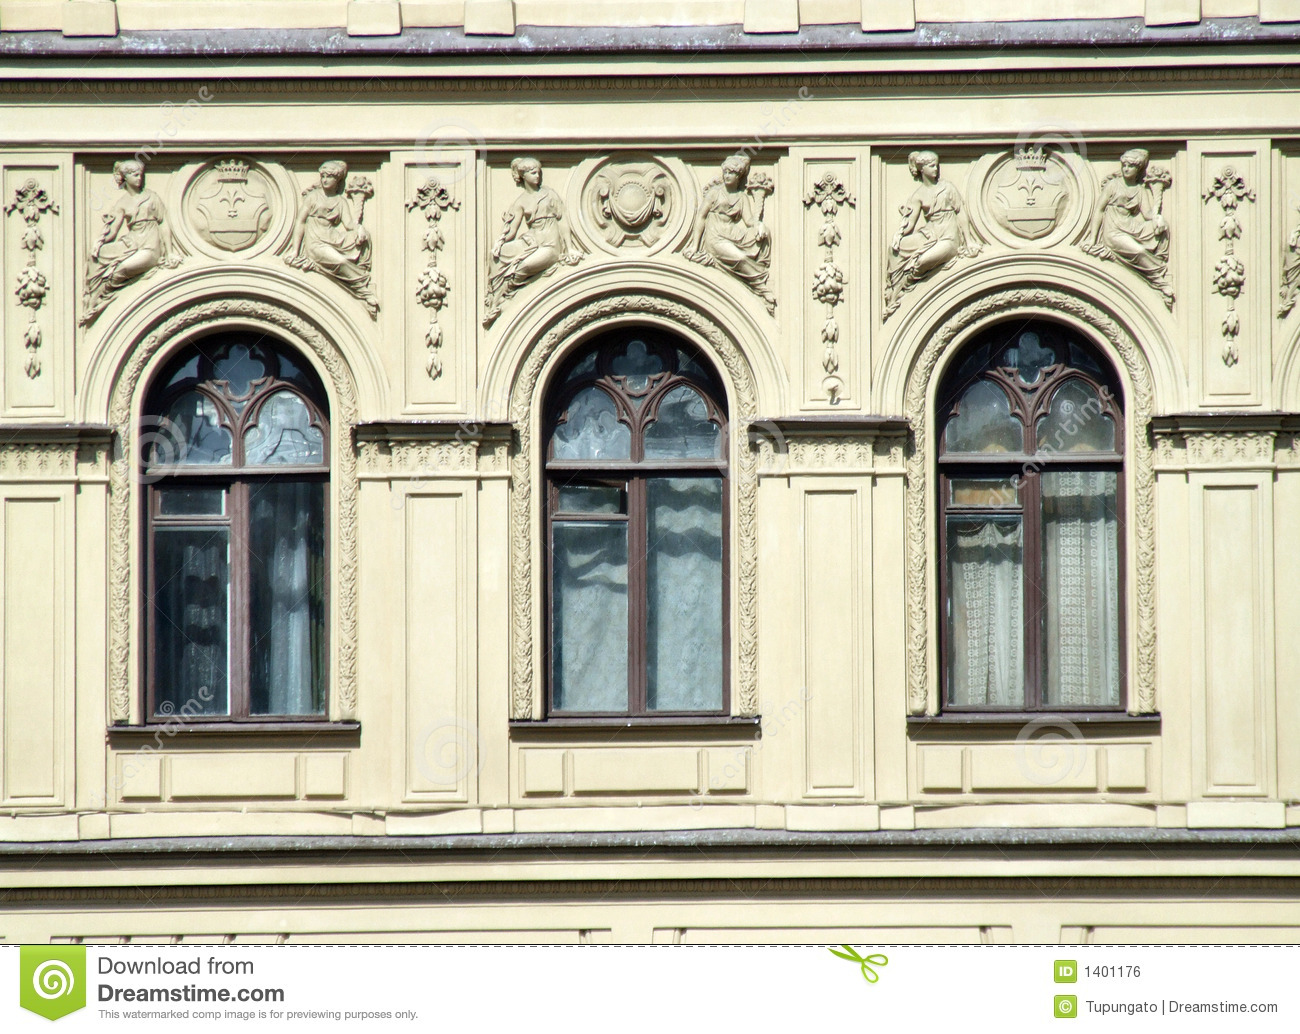 Architecture windows and decorations royalty free stock for Architecture windows